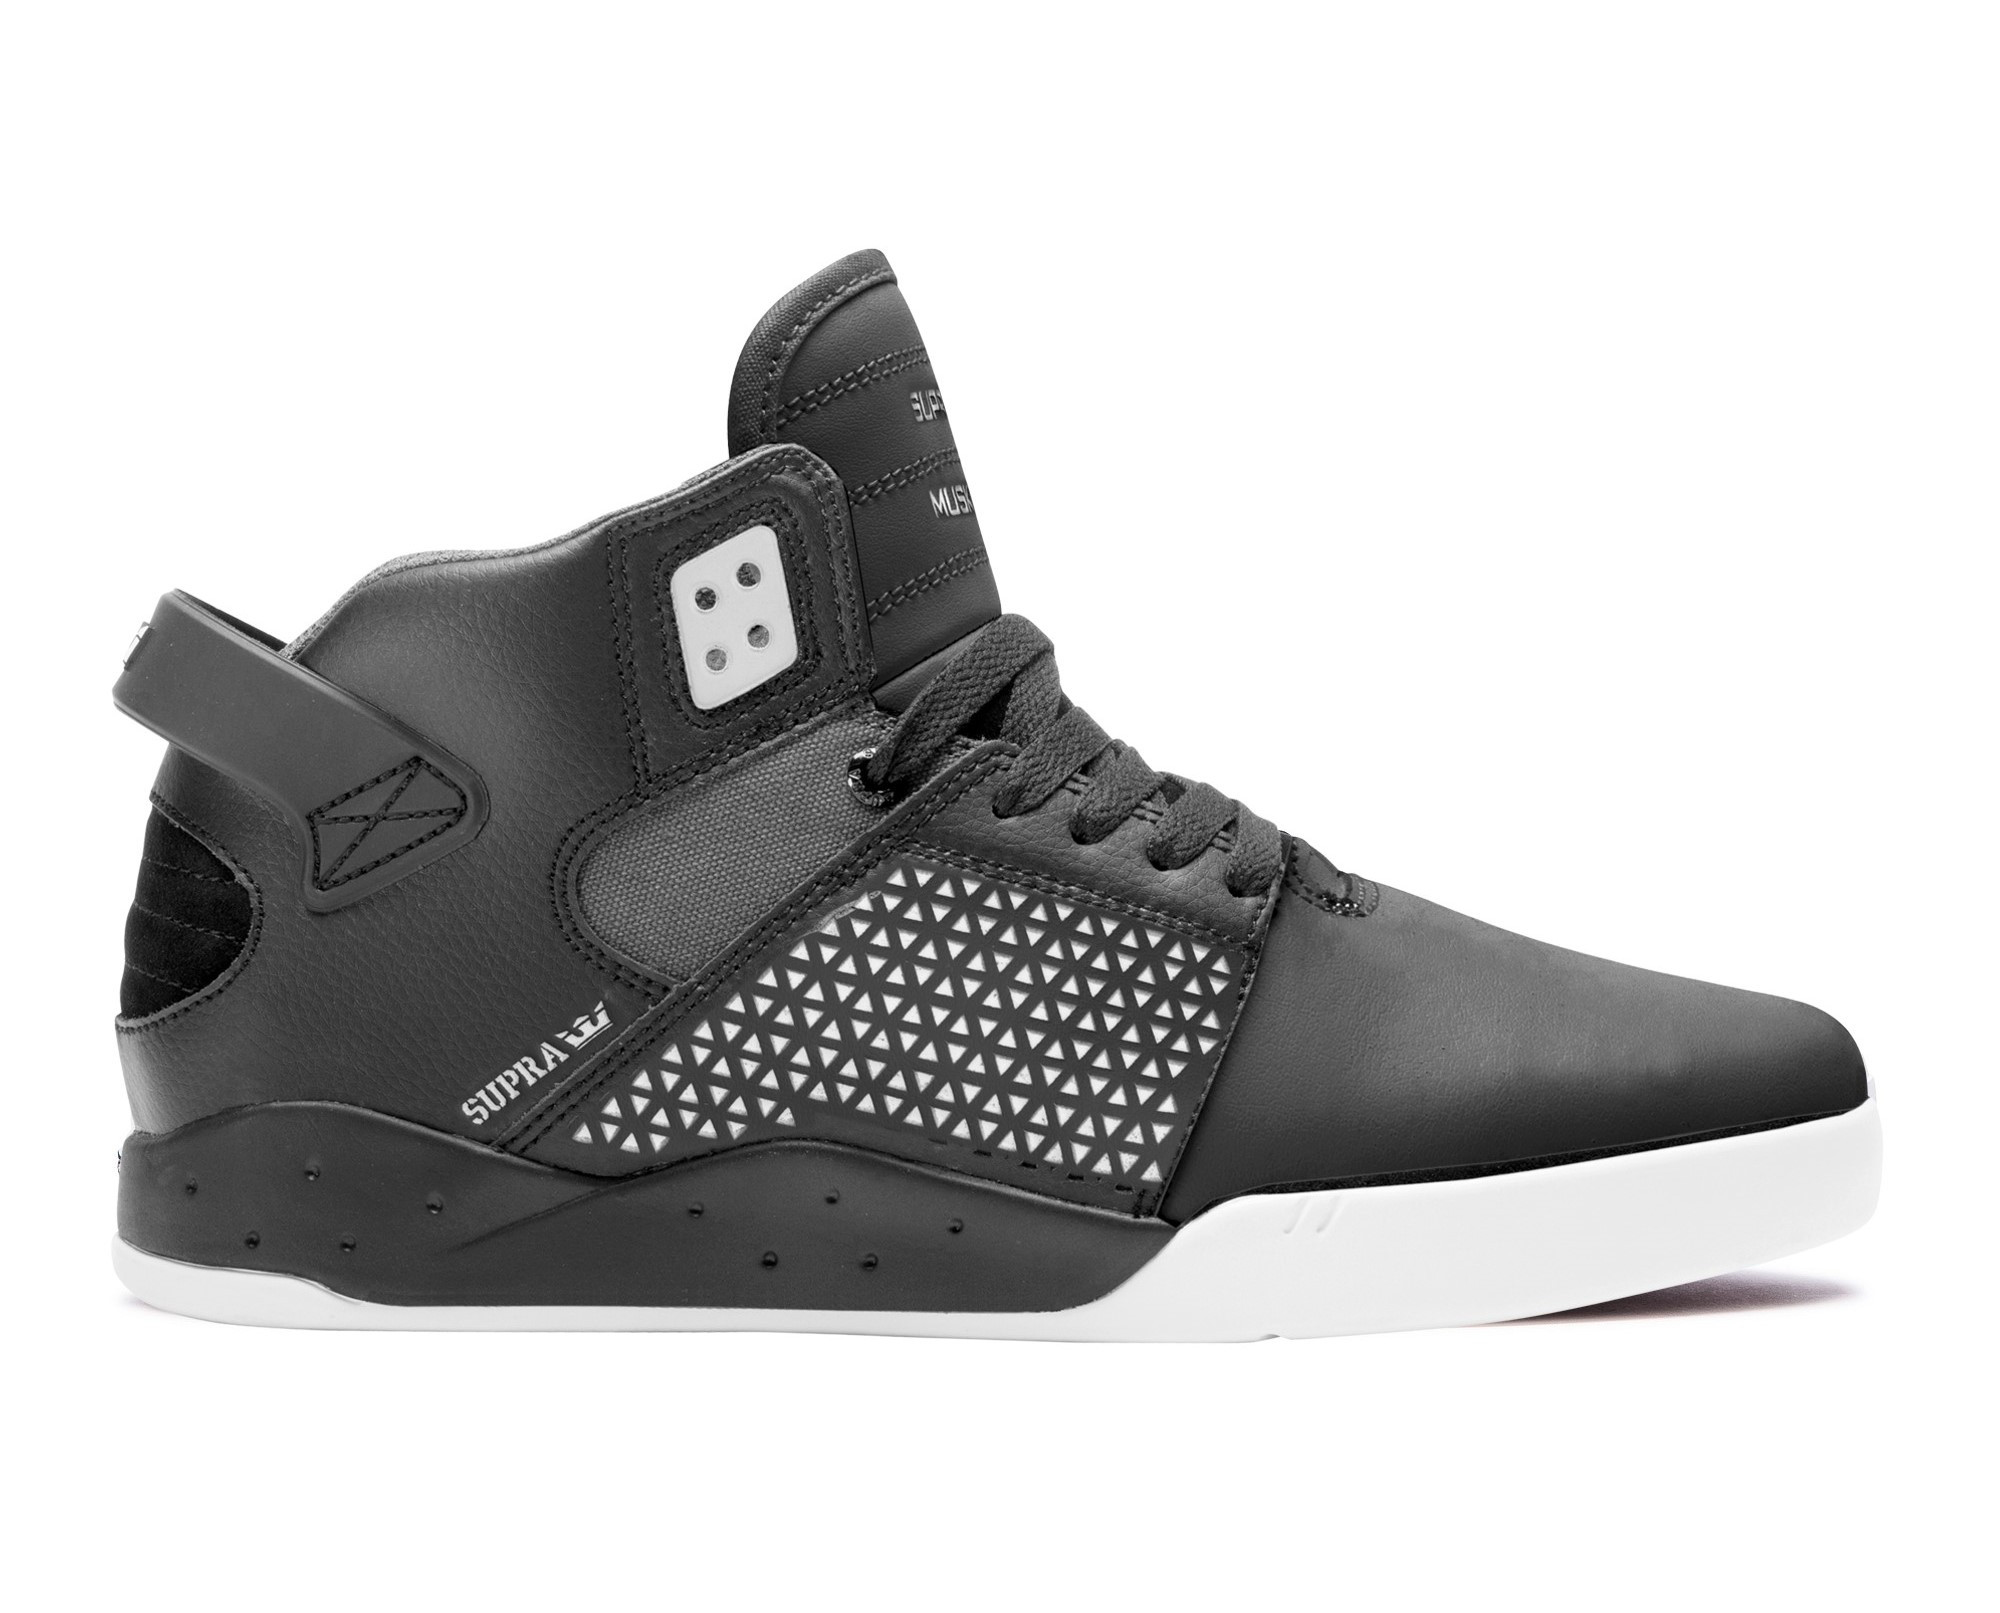 Marques Chaussure homme Supra homme Skytop III White/Black//White